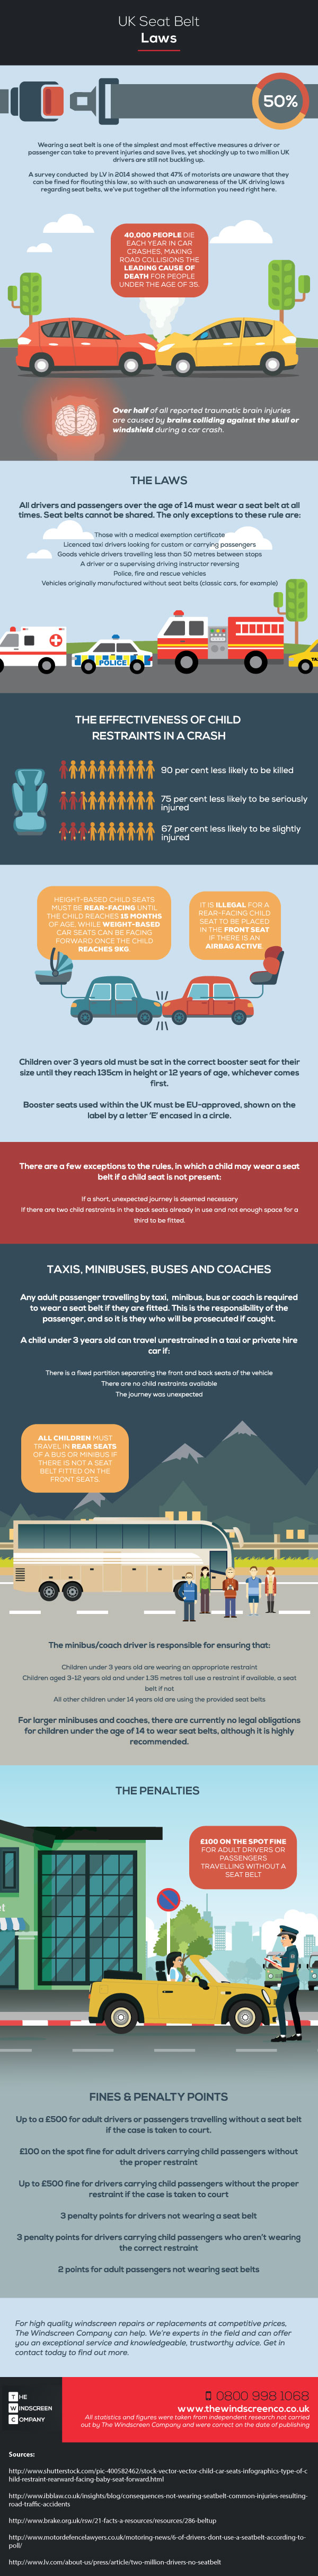 UK seat belt law infographic